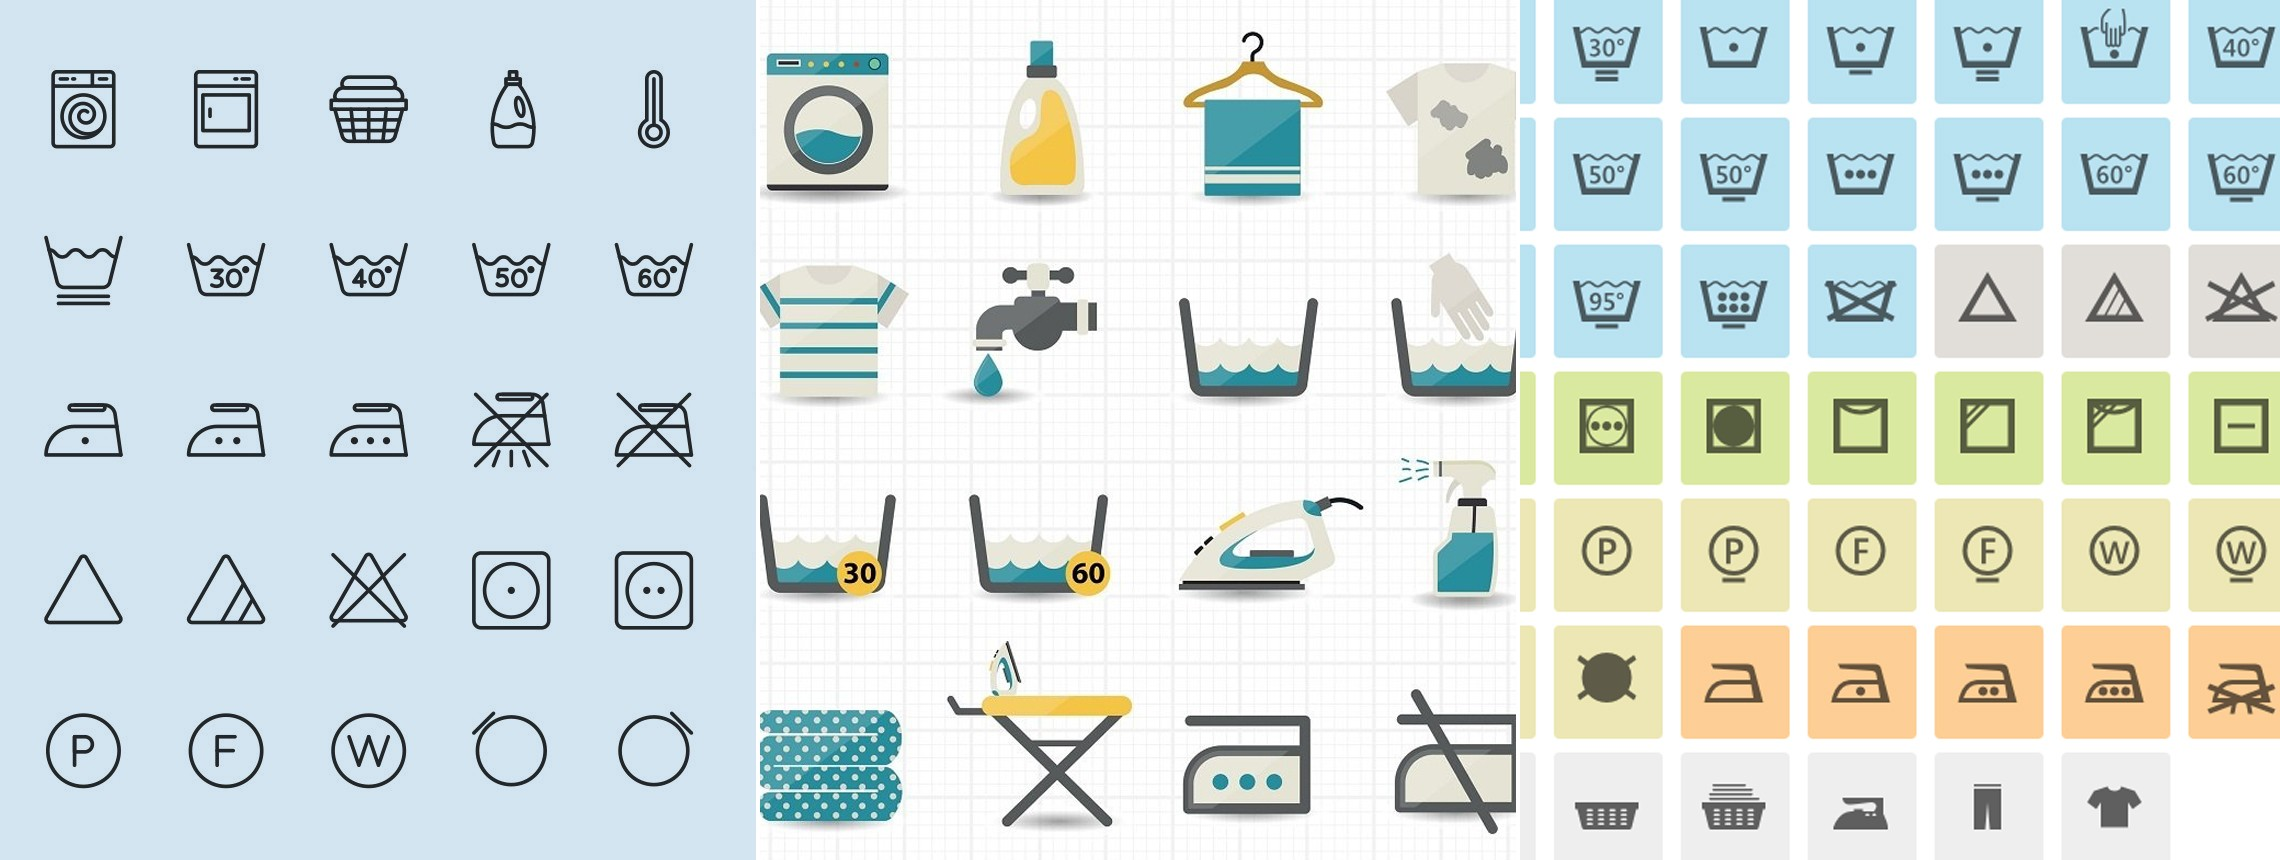 14 Washing Instruction Symbol and Icon Downloads for Manuals and Labels